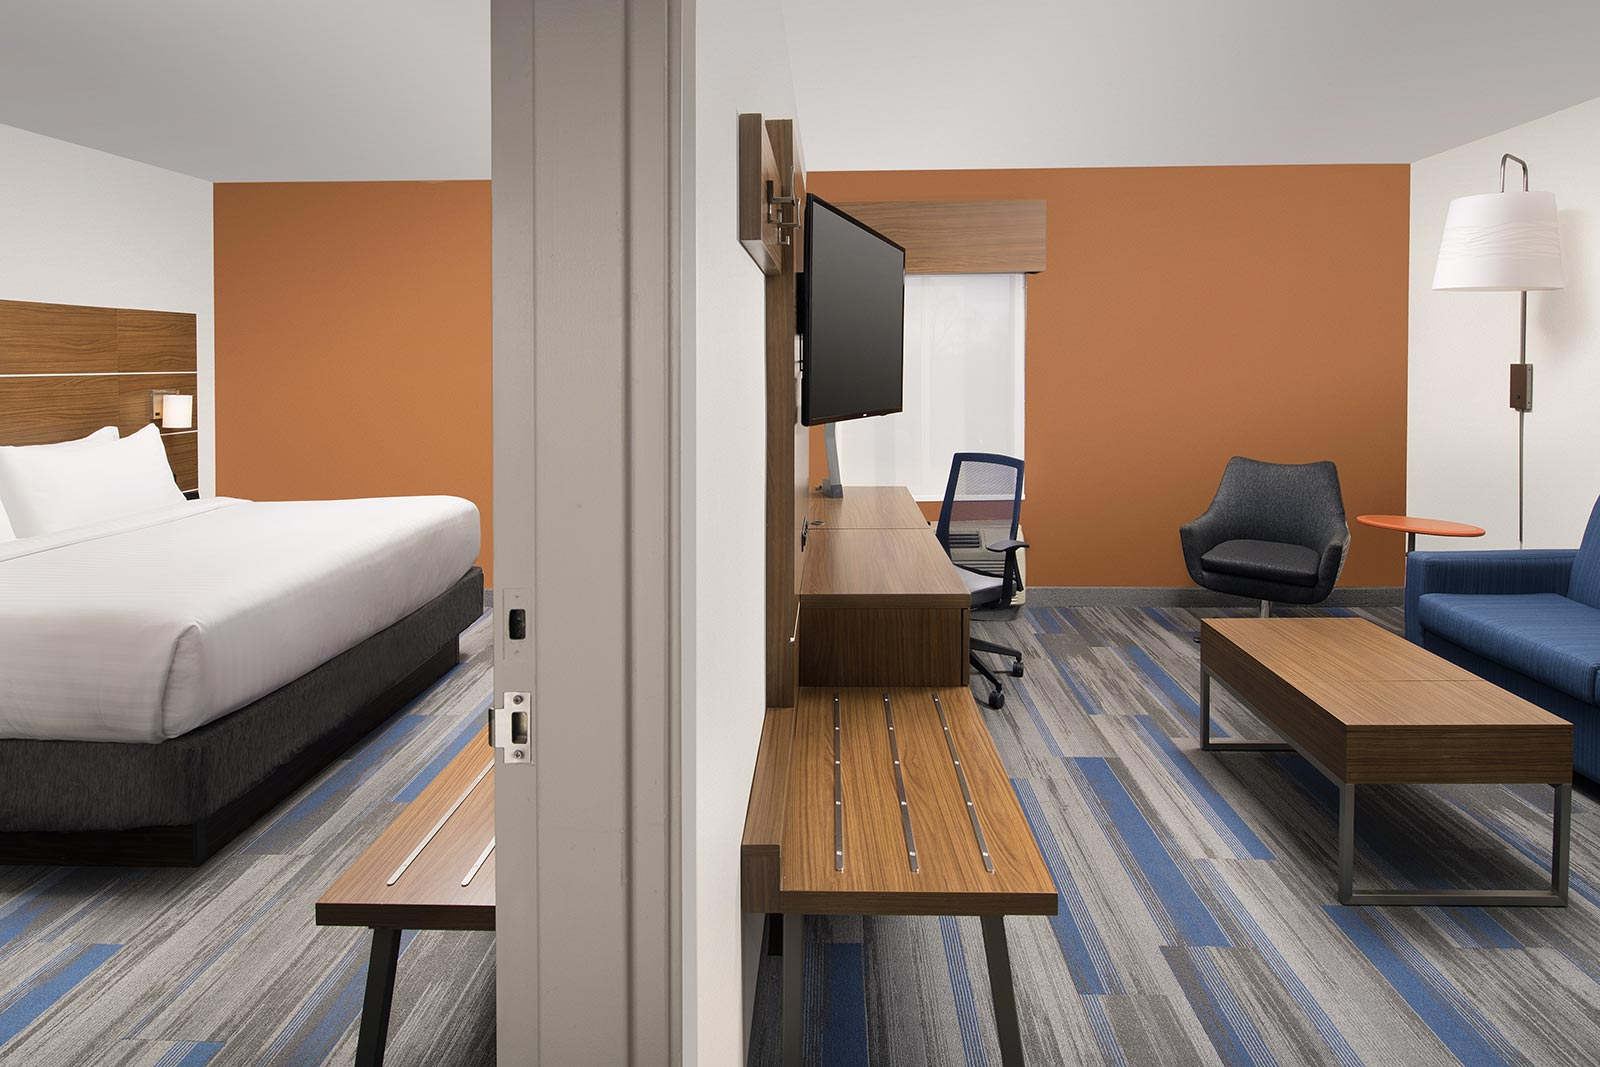 Rooms and Suites at Our University of Maryland College Park Hotel